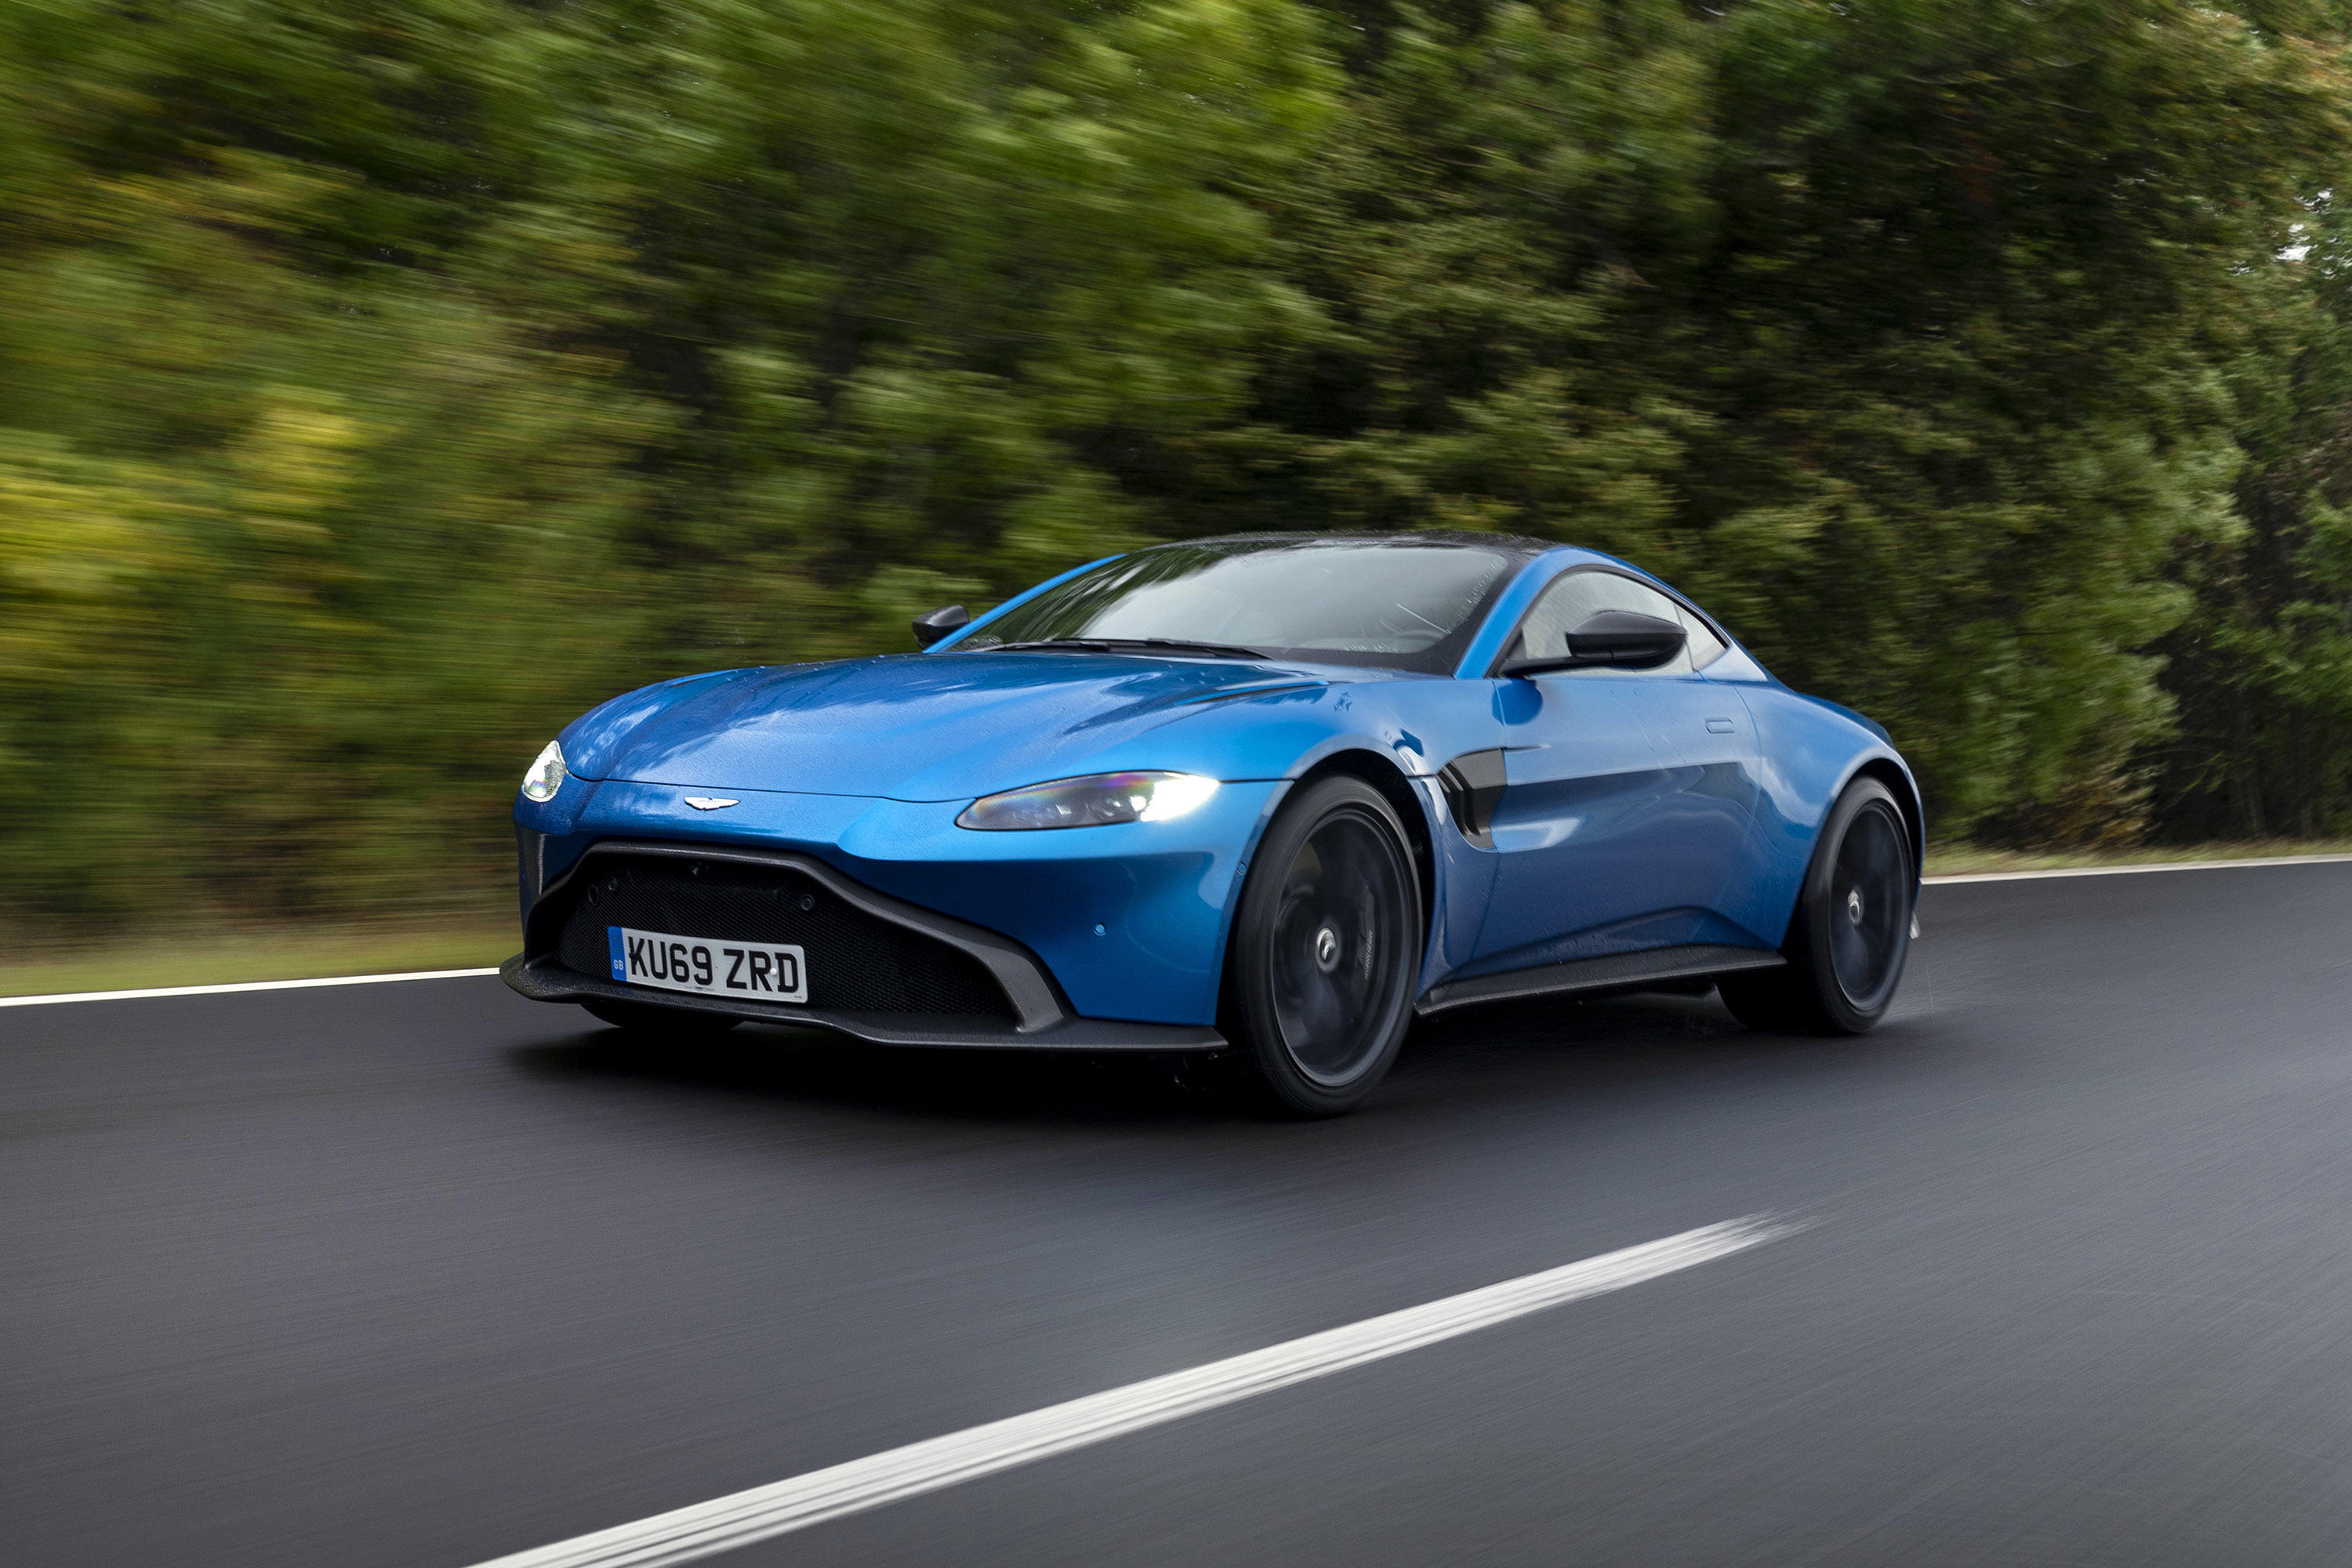 2020 Aston Martin Vantage Amr First Drive Review Stick Shift Standout Roadshow